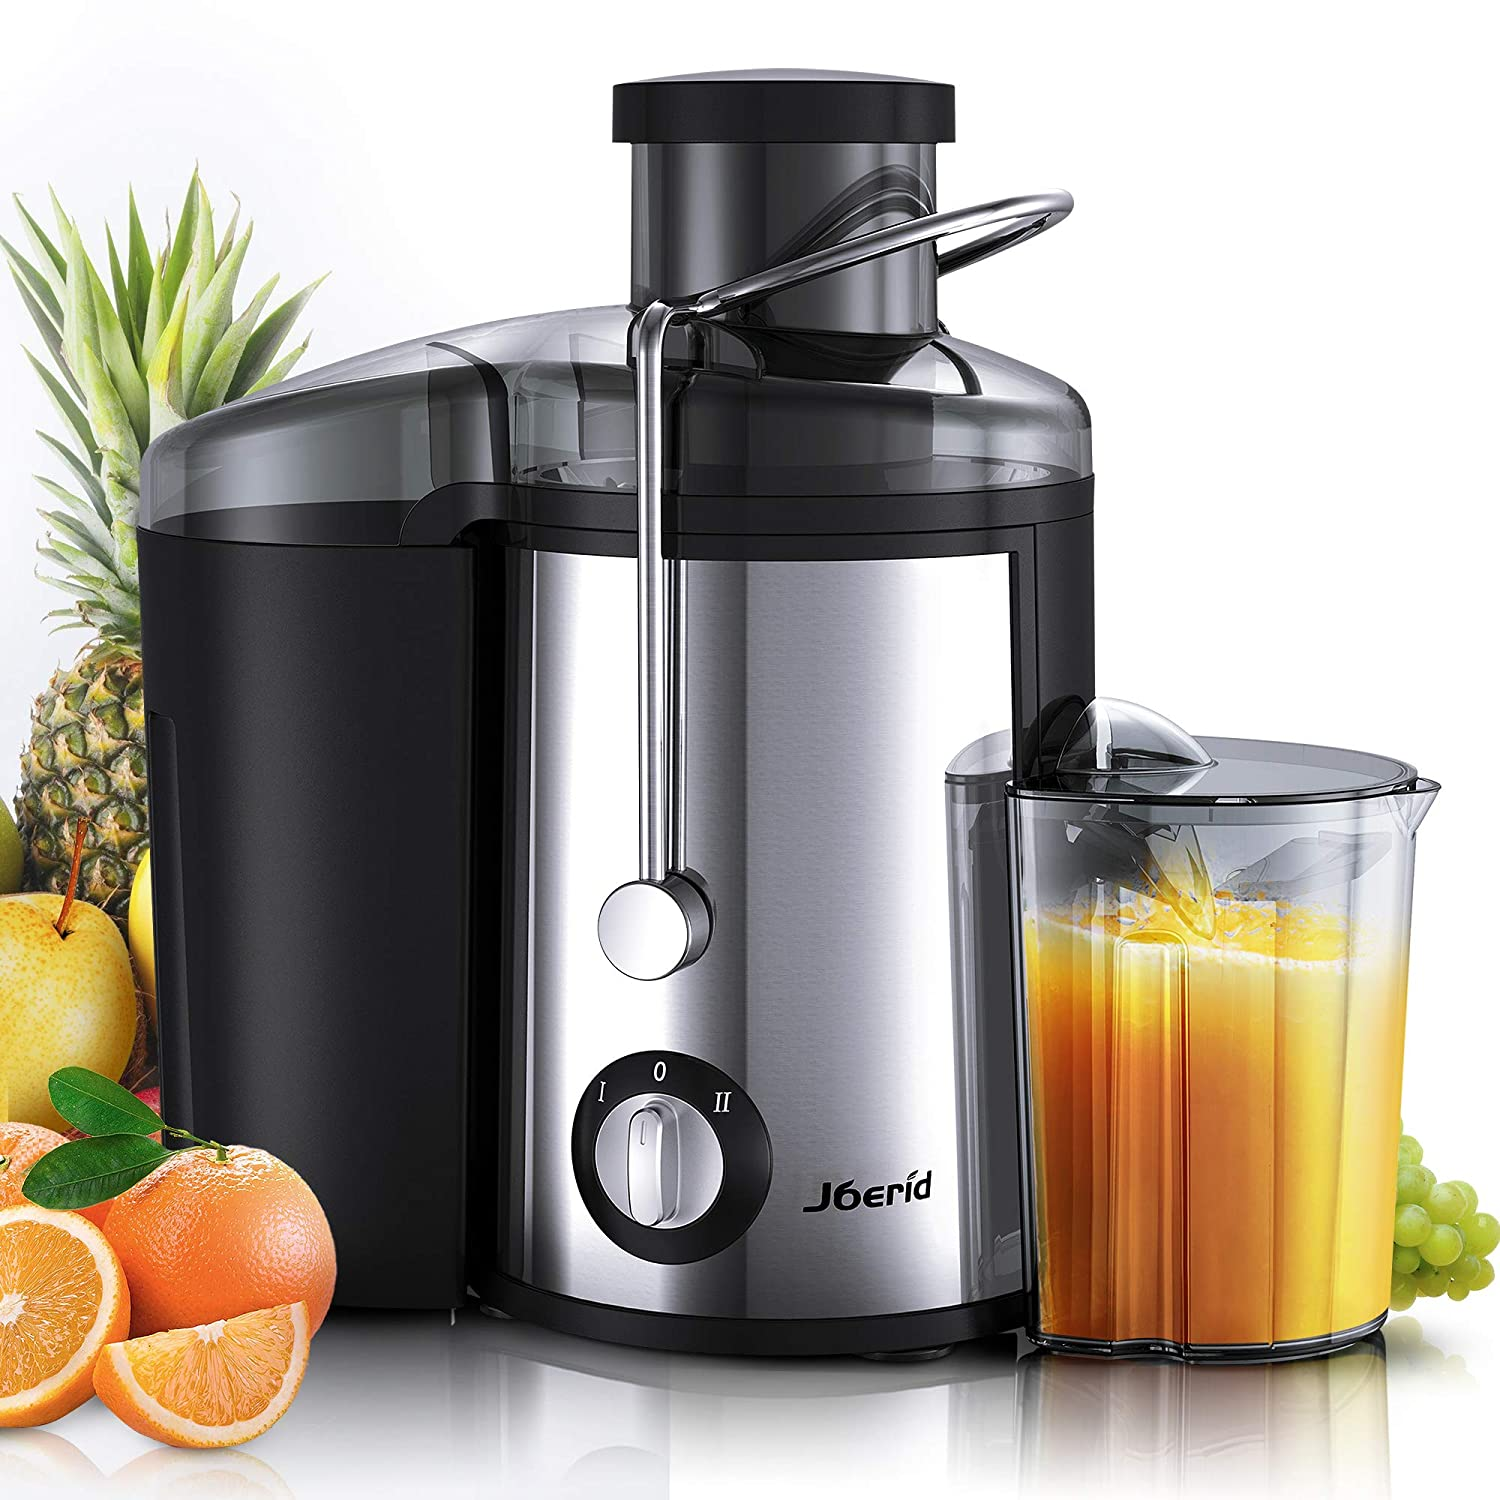 Joerid Juicer 2019 Upgrade Centrifugal Juicer Machine Juice Extractor With Spout Adjustable Lighter Powerful Easy To Clean Bpa Free